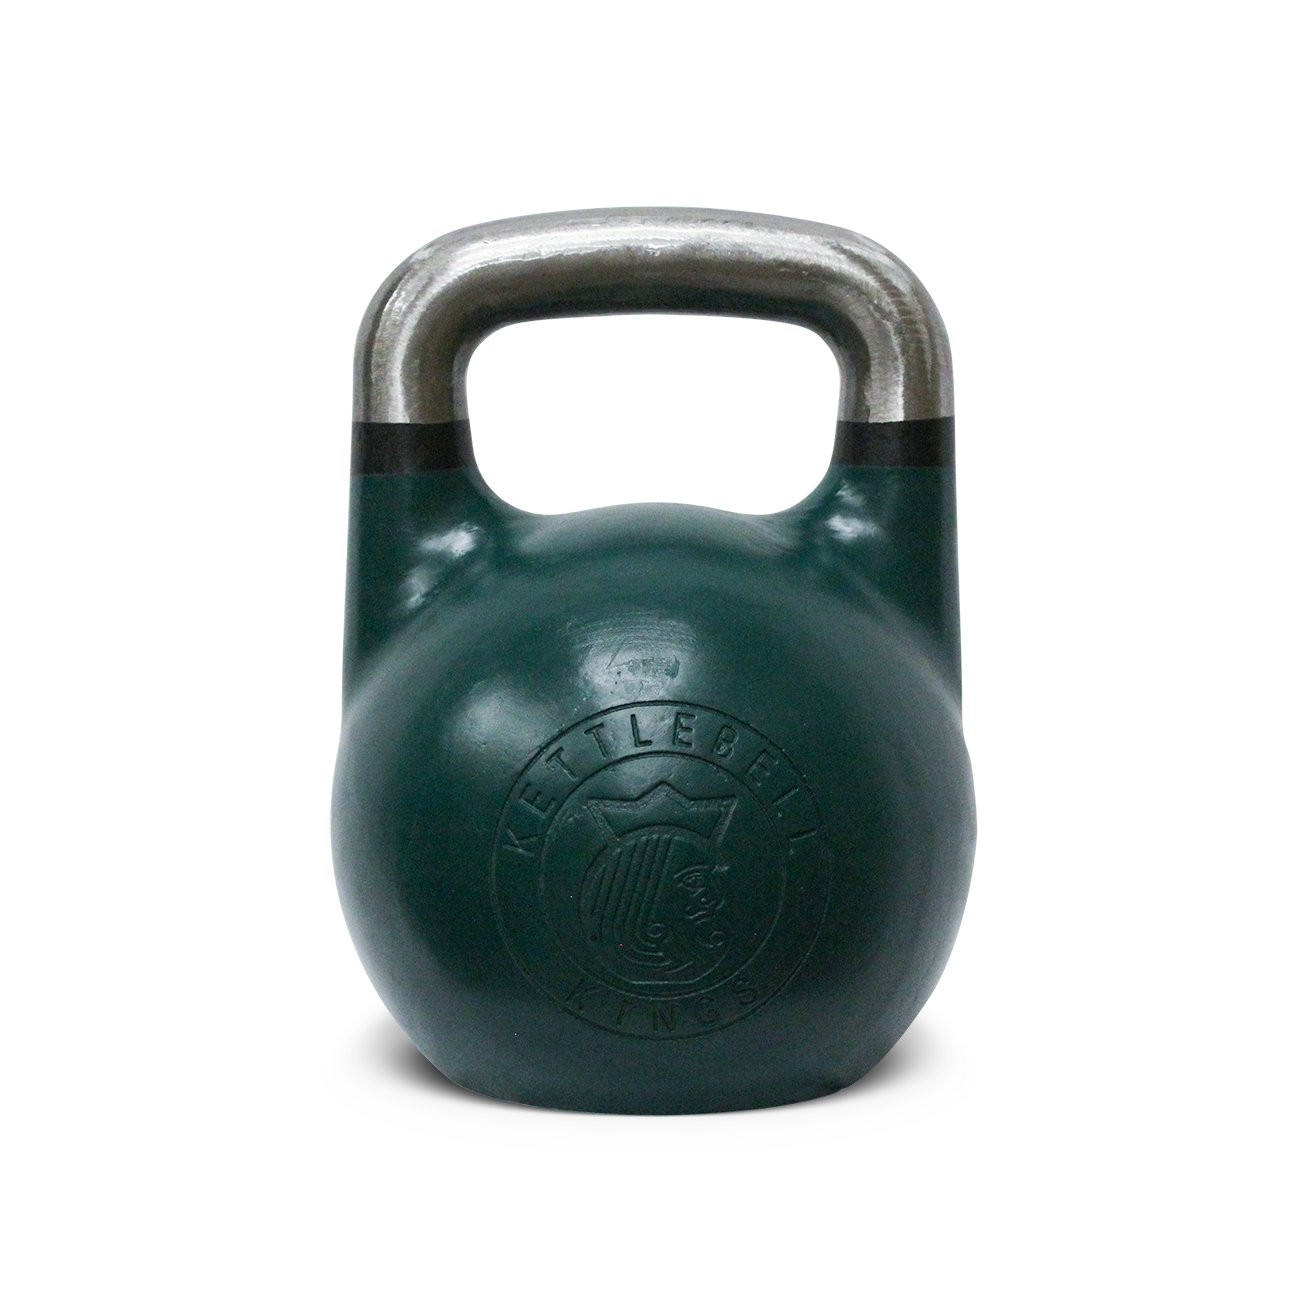 Kettlebell Kings | Competition Kettlebell Weights | Kettlebell Sets for Women & Men | Designed for Comfort in High Repetition Workouts | Superior Balance for Better Workouts (57)